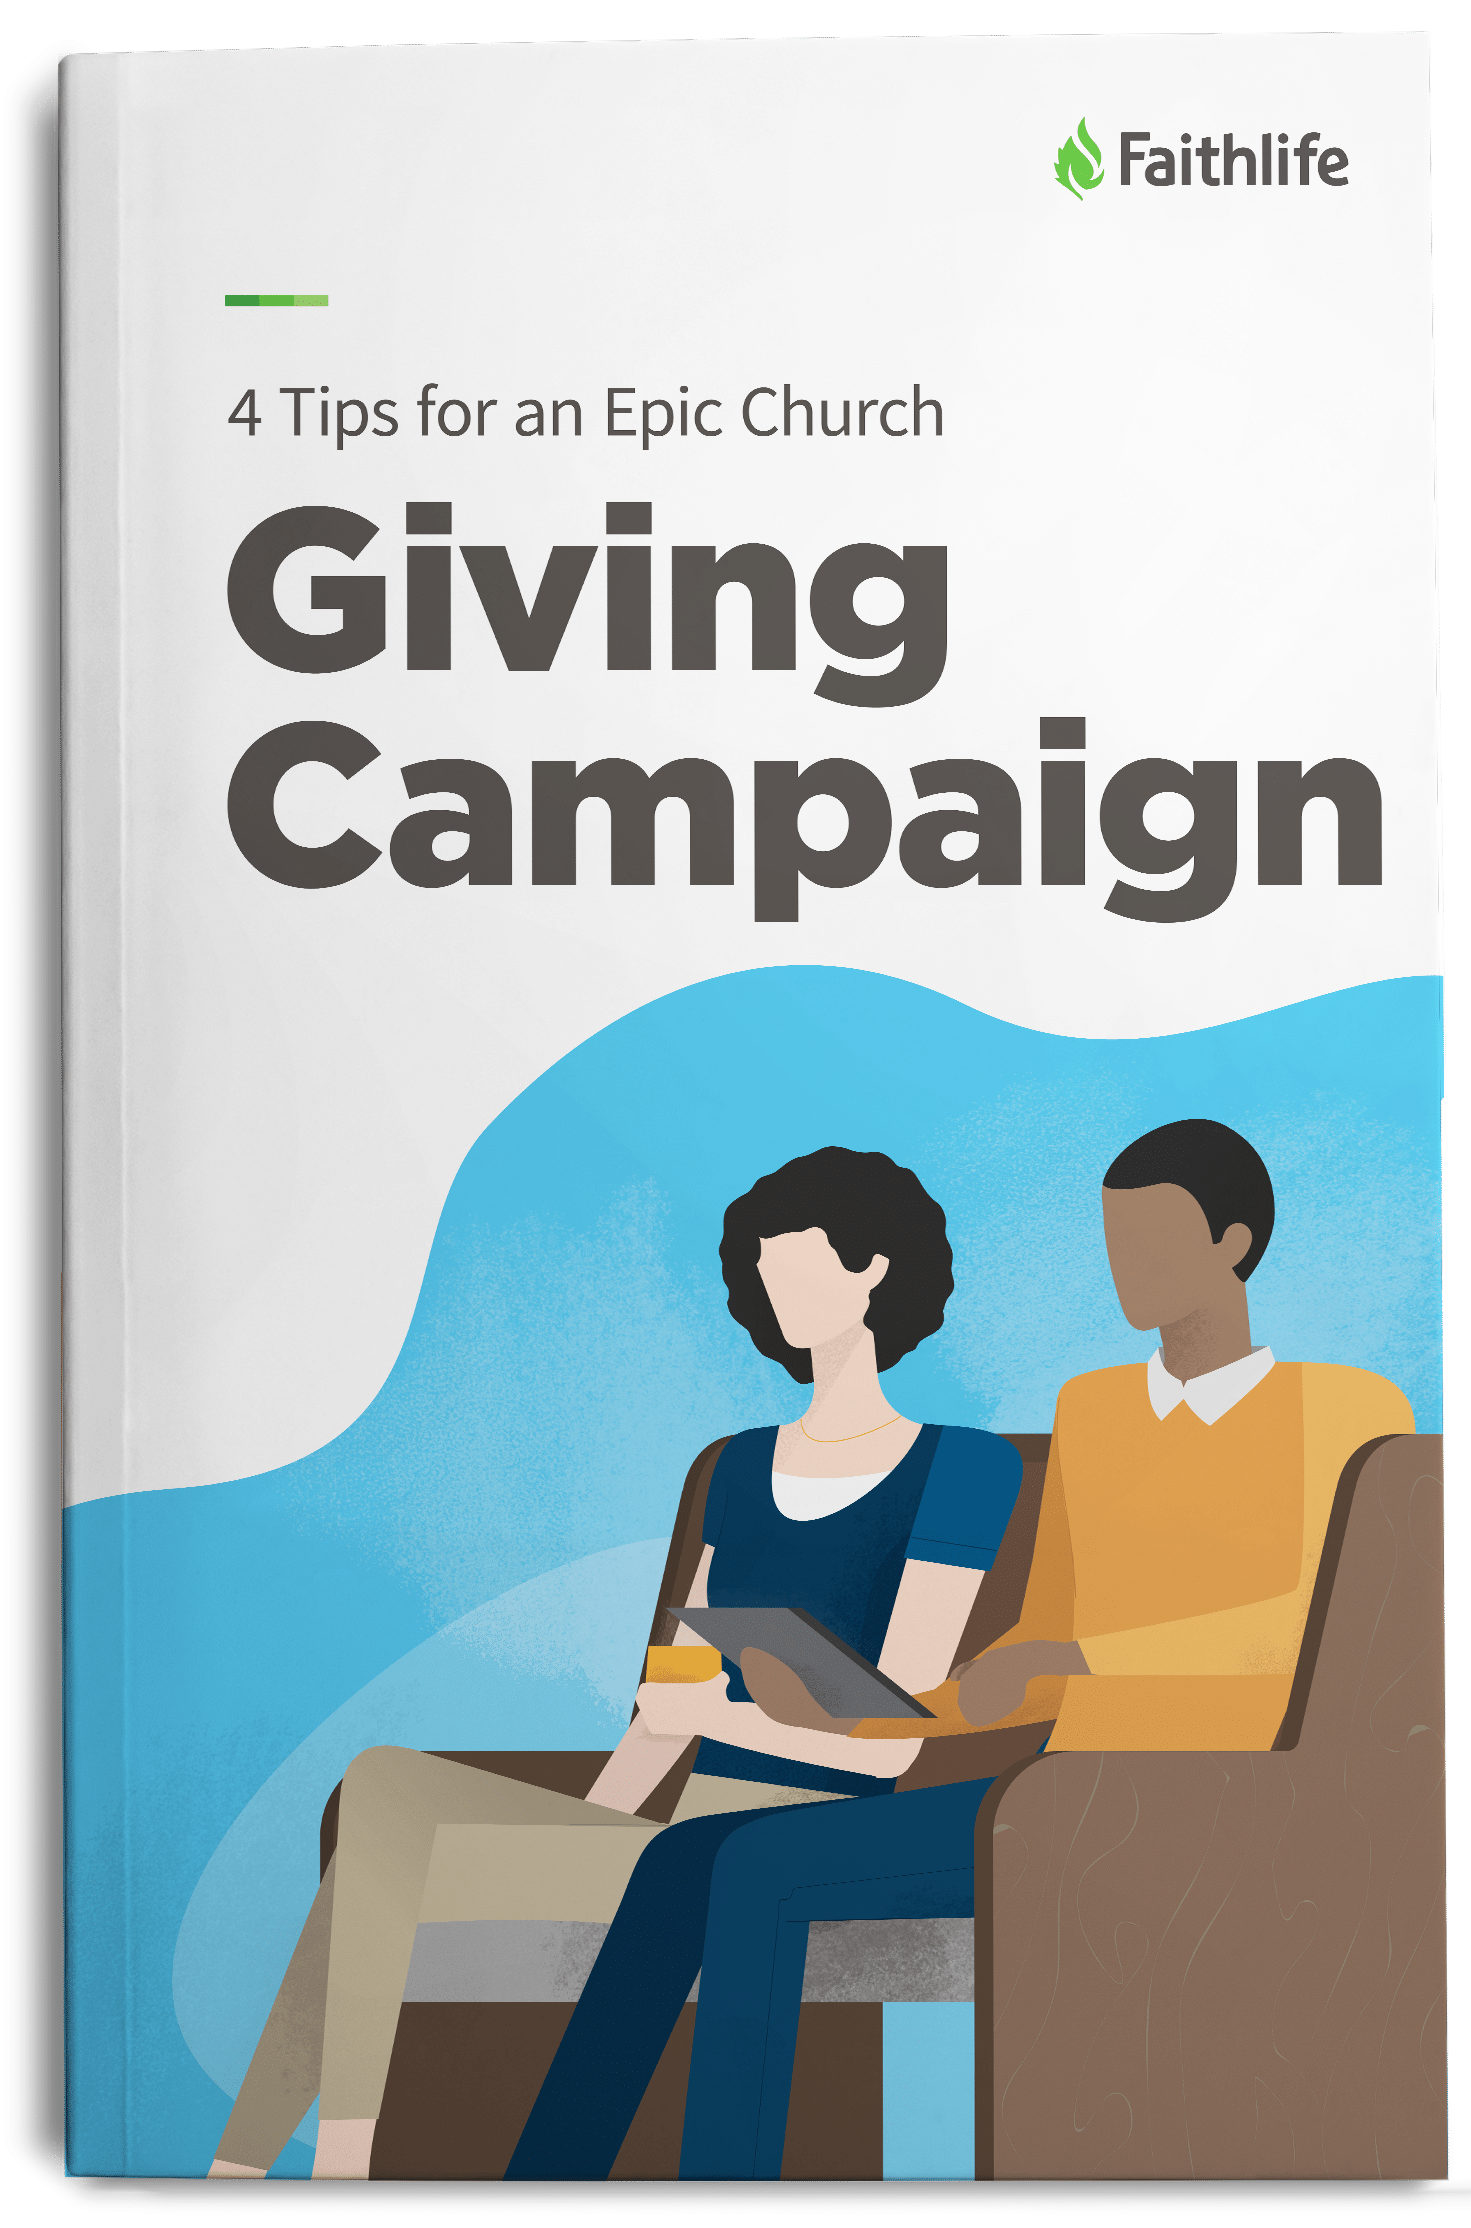 4 Tips for an Epic Church Giving Campaign